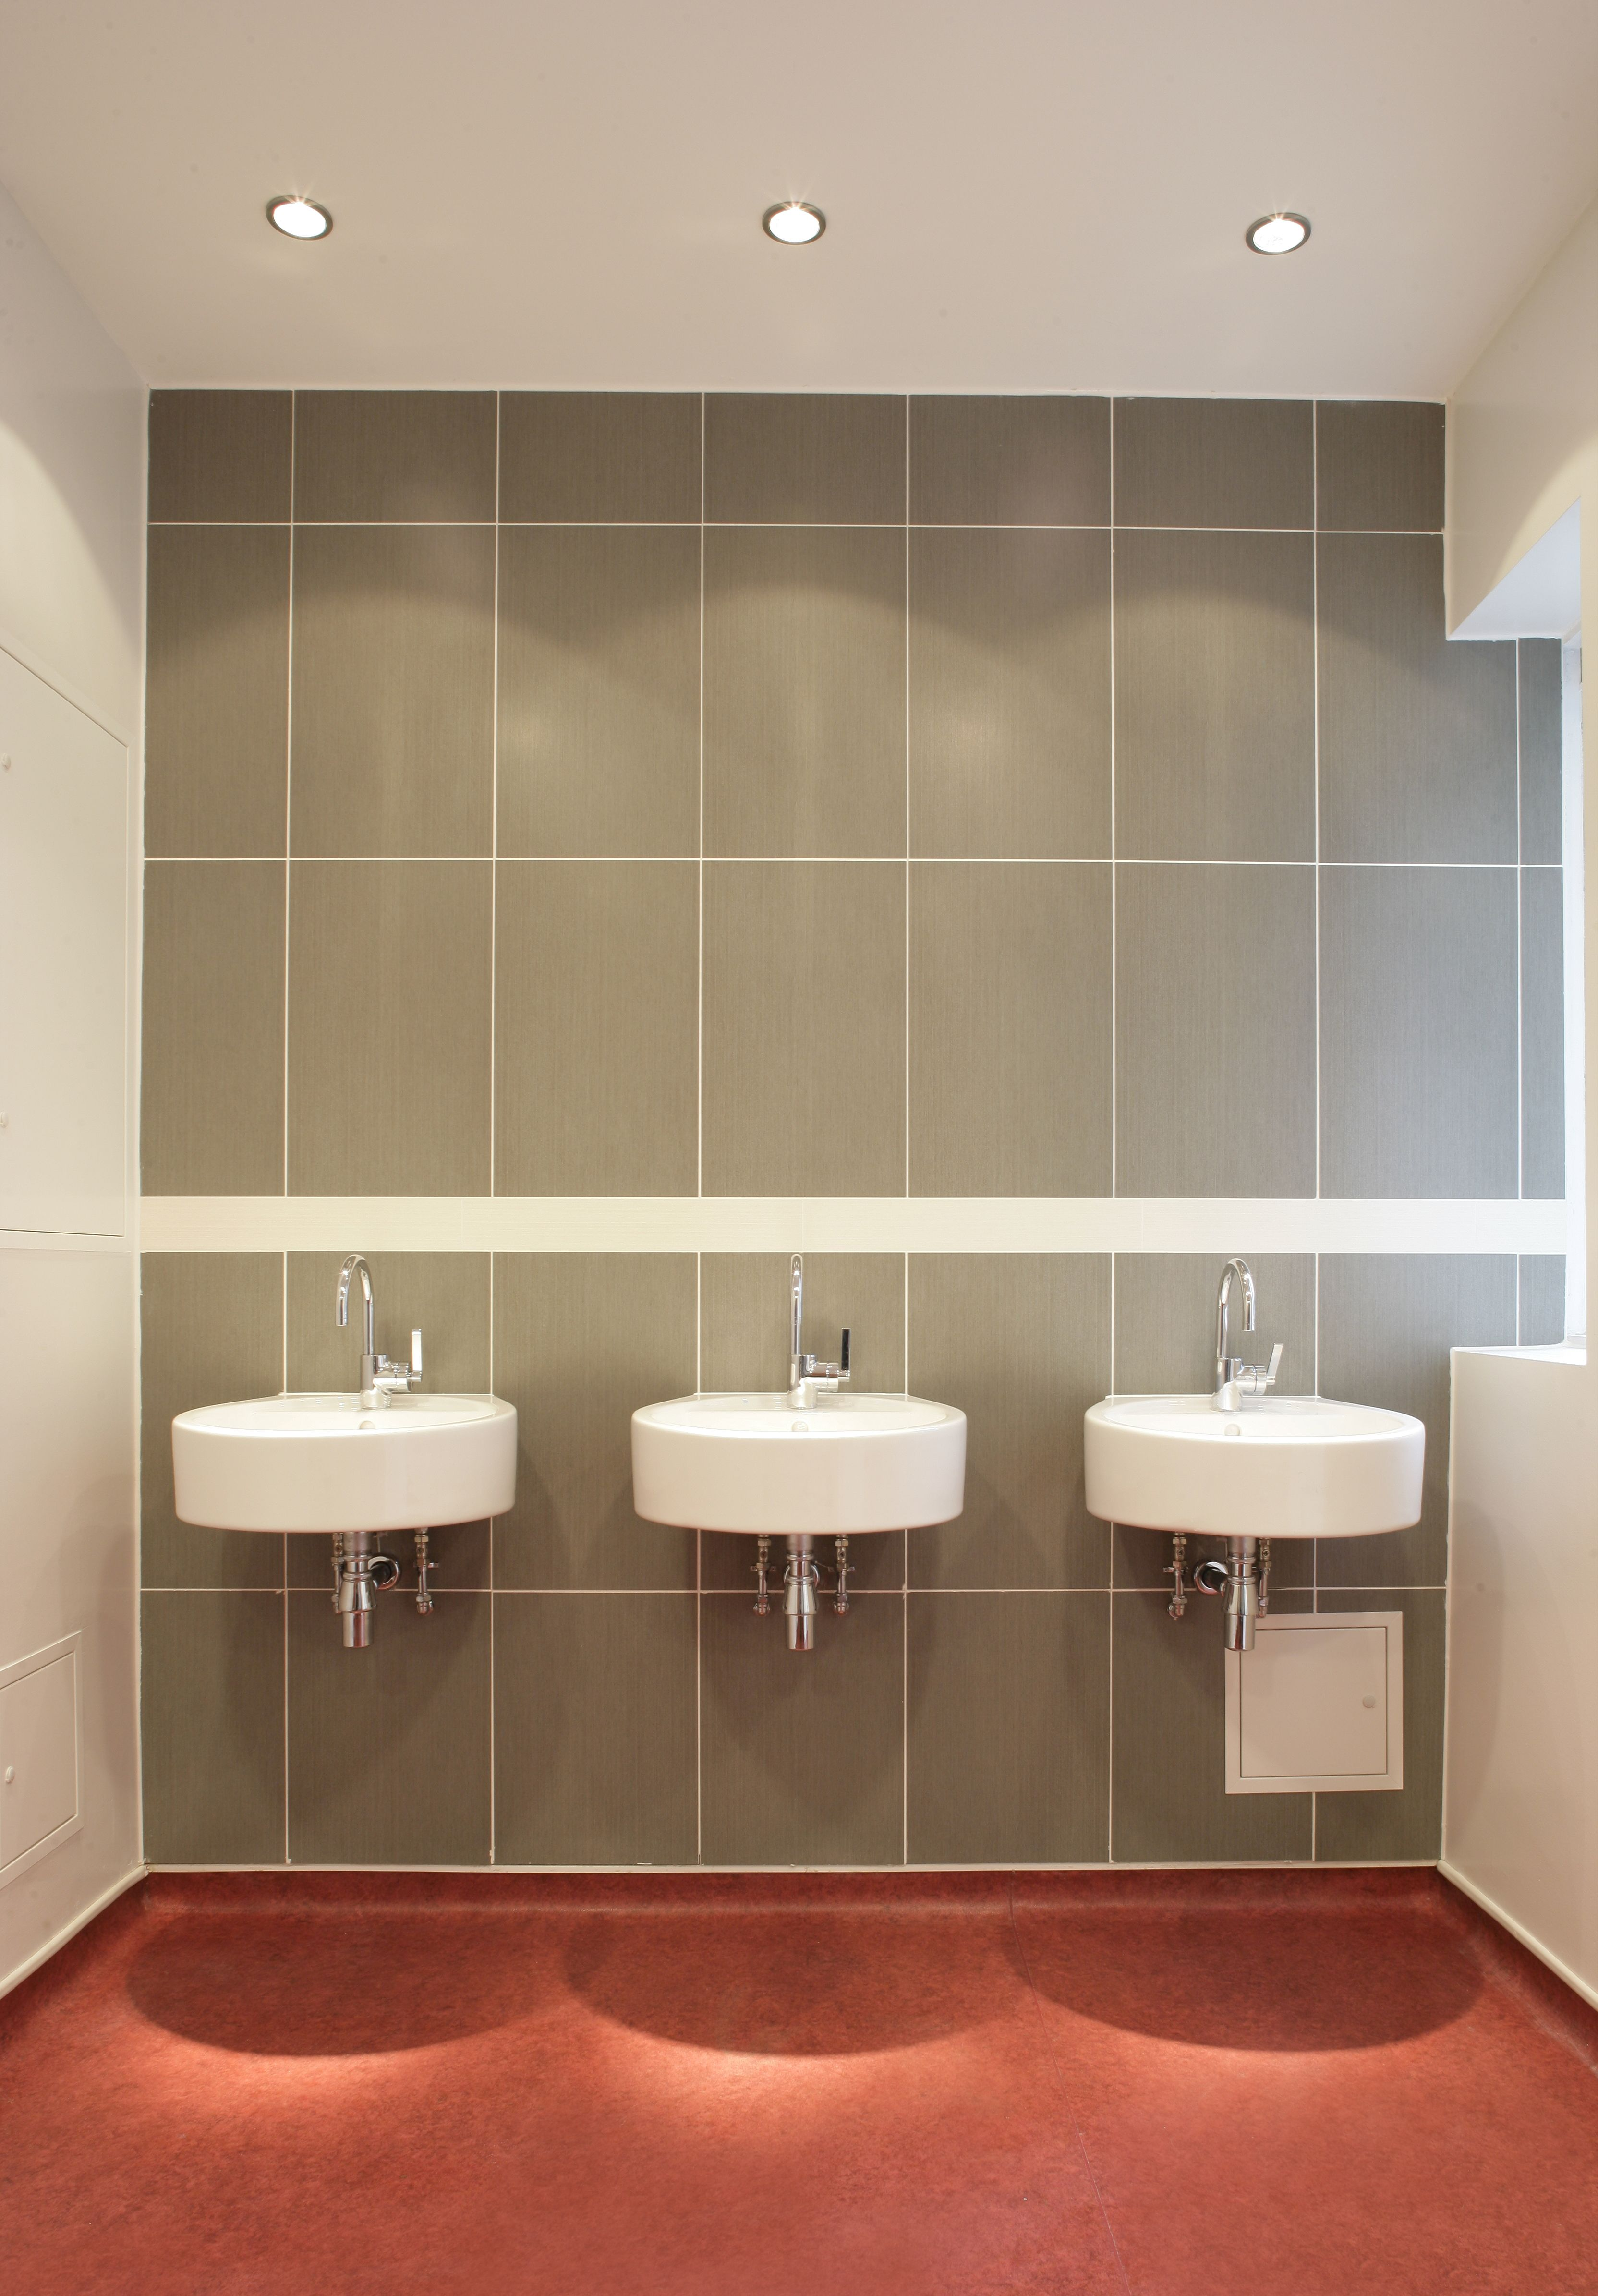 Toilets inside of hagley road 123 127 hagley road by thuja design